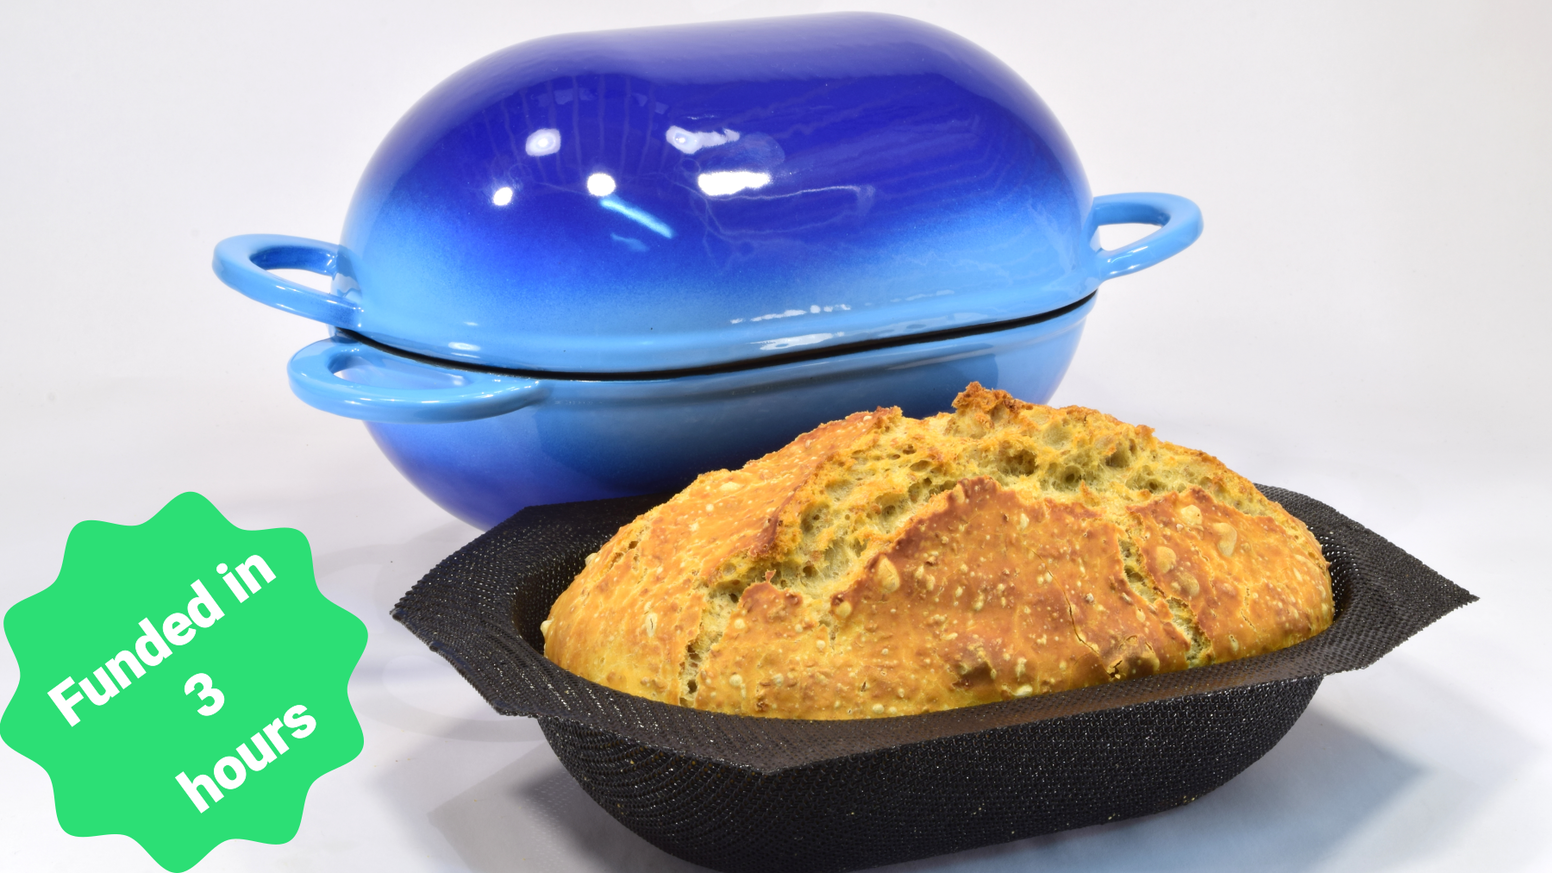 LoafNest Is Now A Reality Pre Order And Get Your Before Christmas